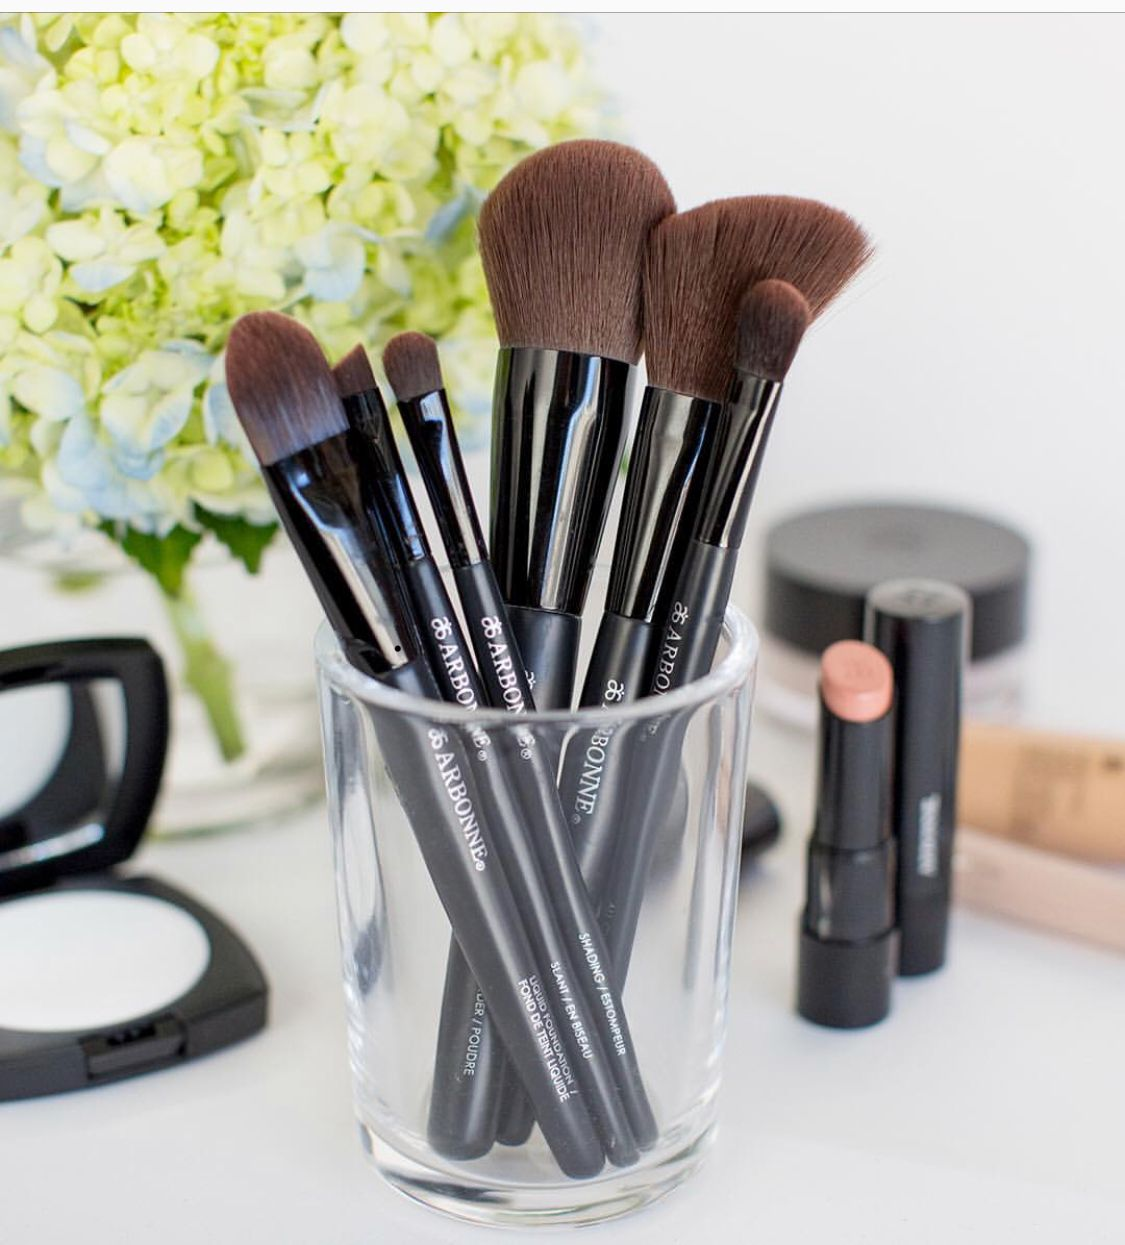 10 easy steps for clean and goodasnew brushes Arbonne